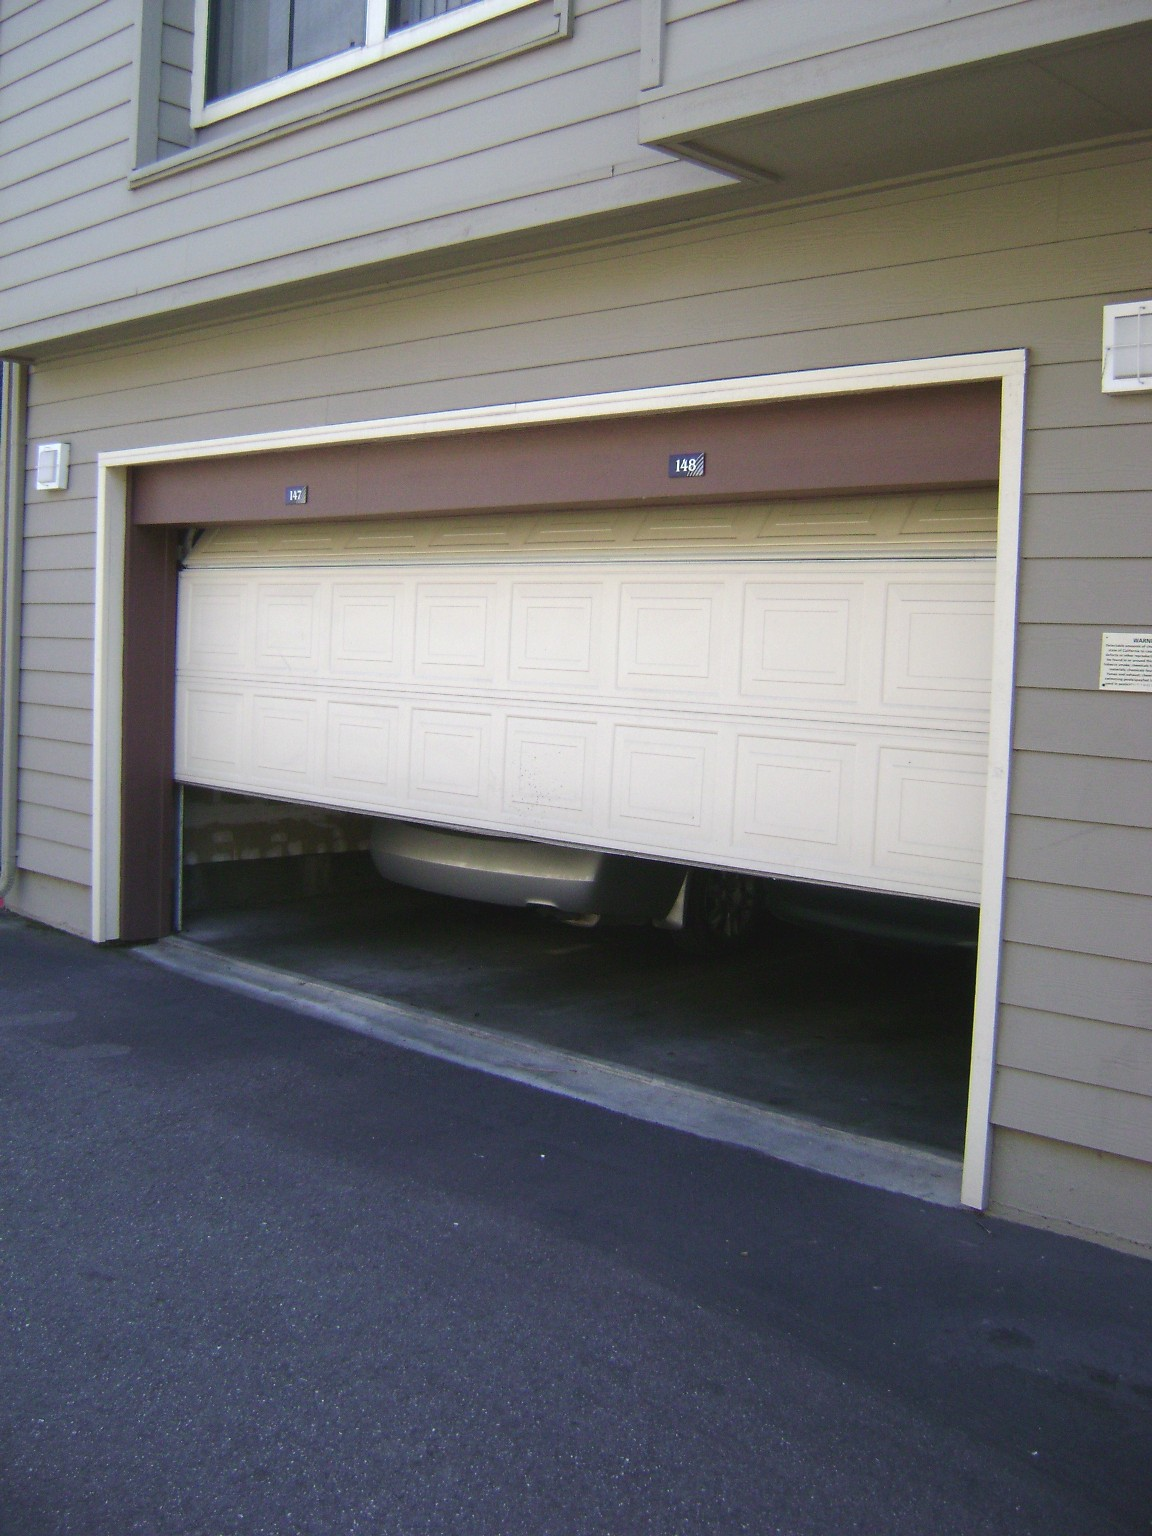 FileGarage Door Sliding Up